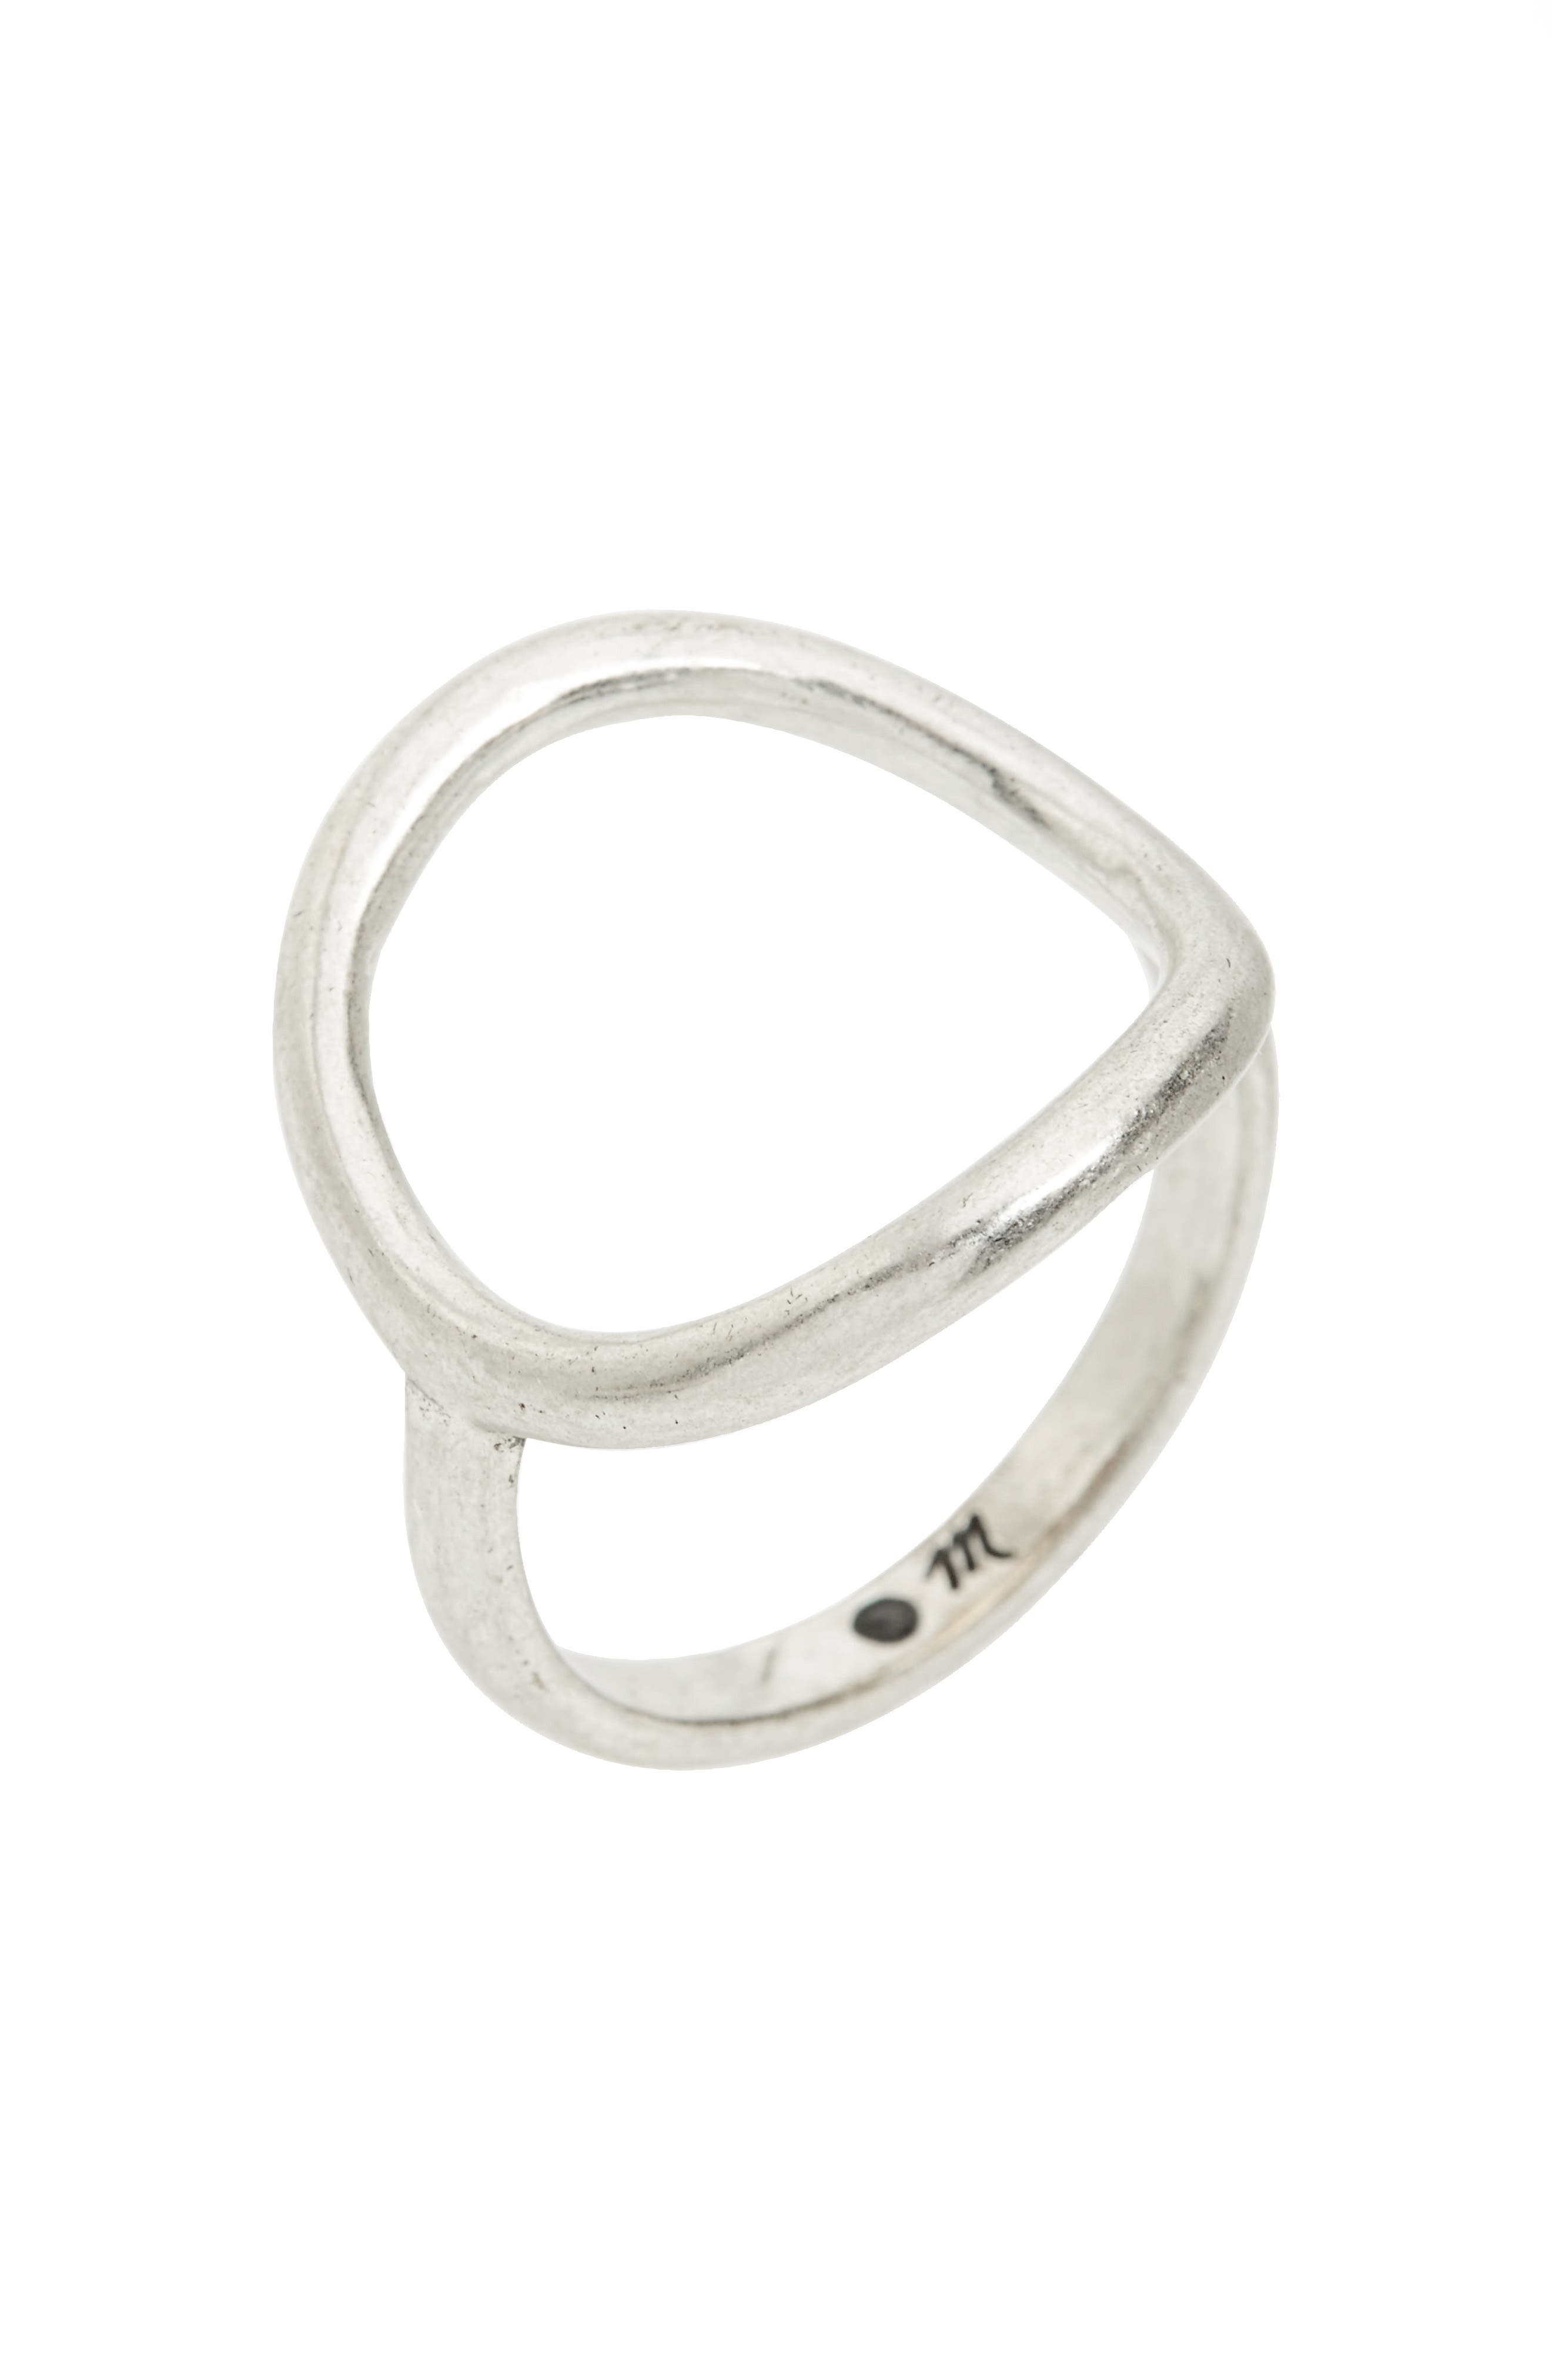 Ceremony Circle Ring,                             Alternate thumbnail 2, color,                             LIGHT SILVER OX